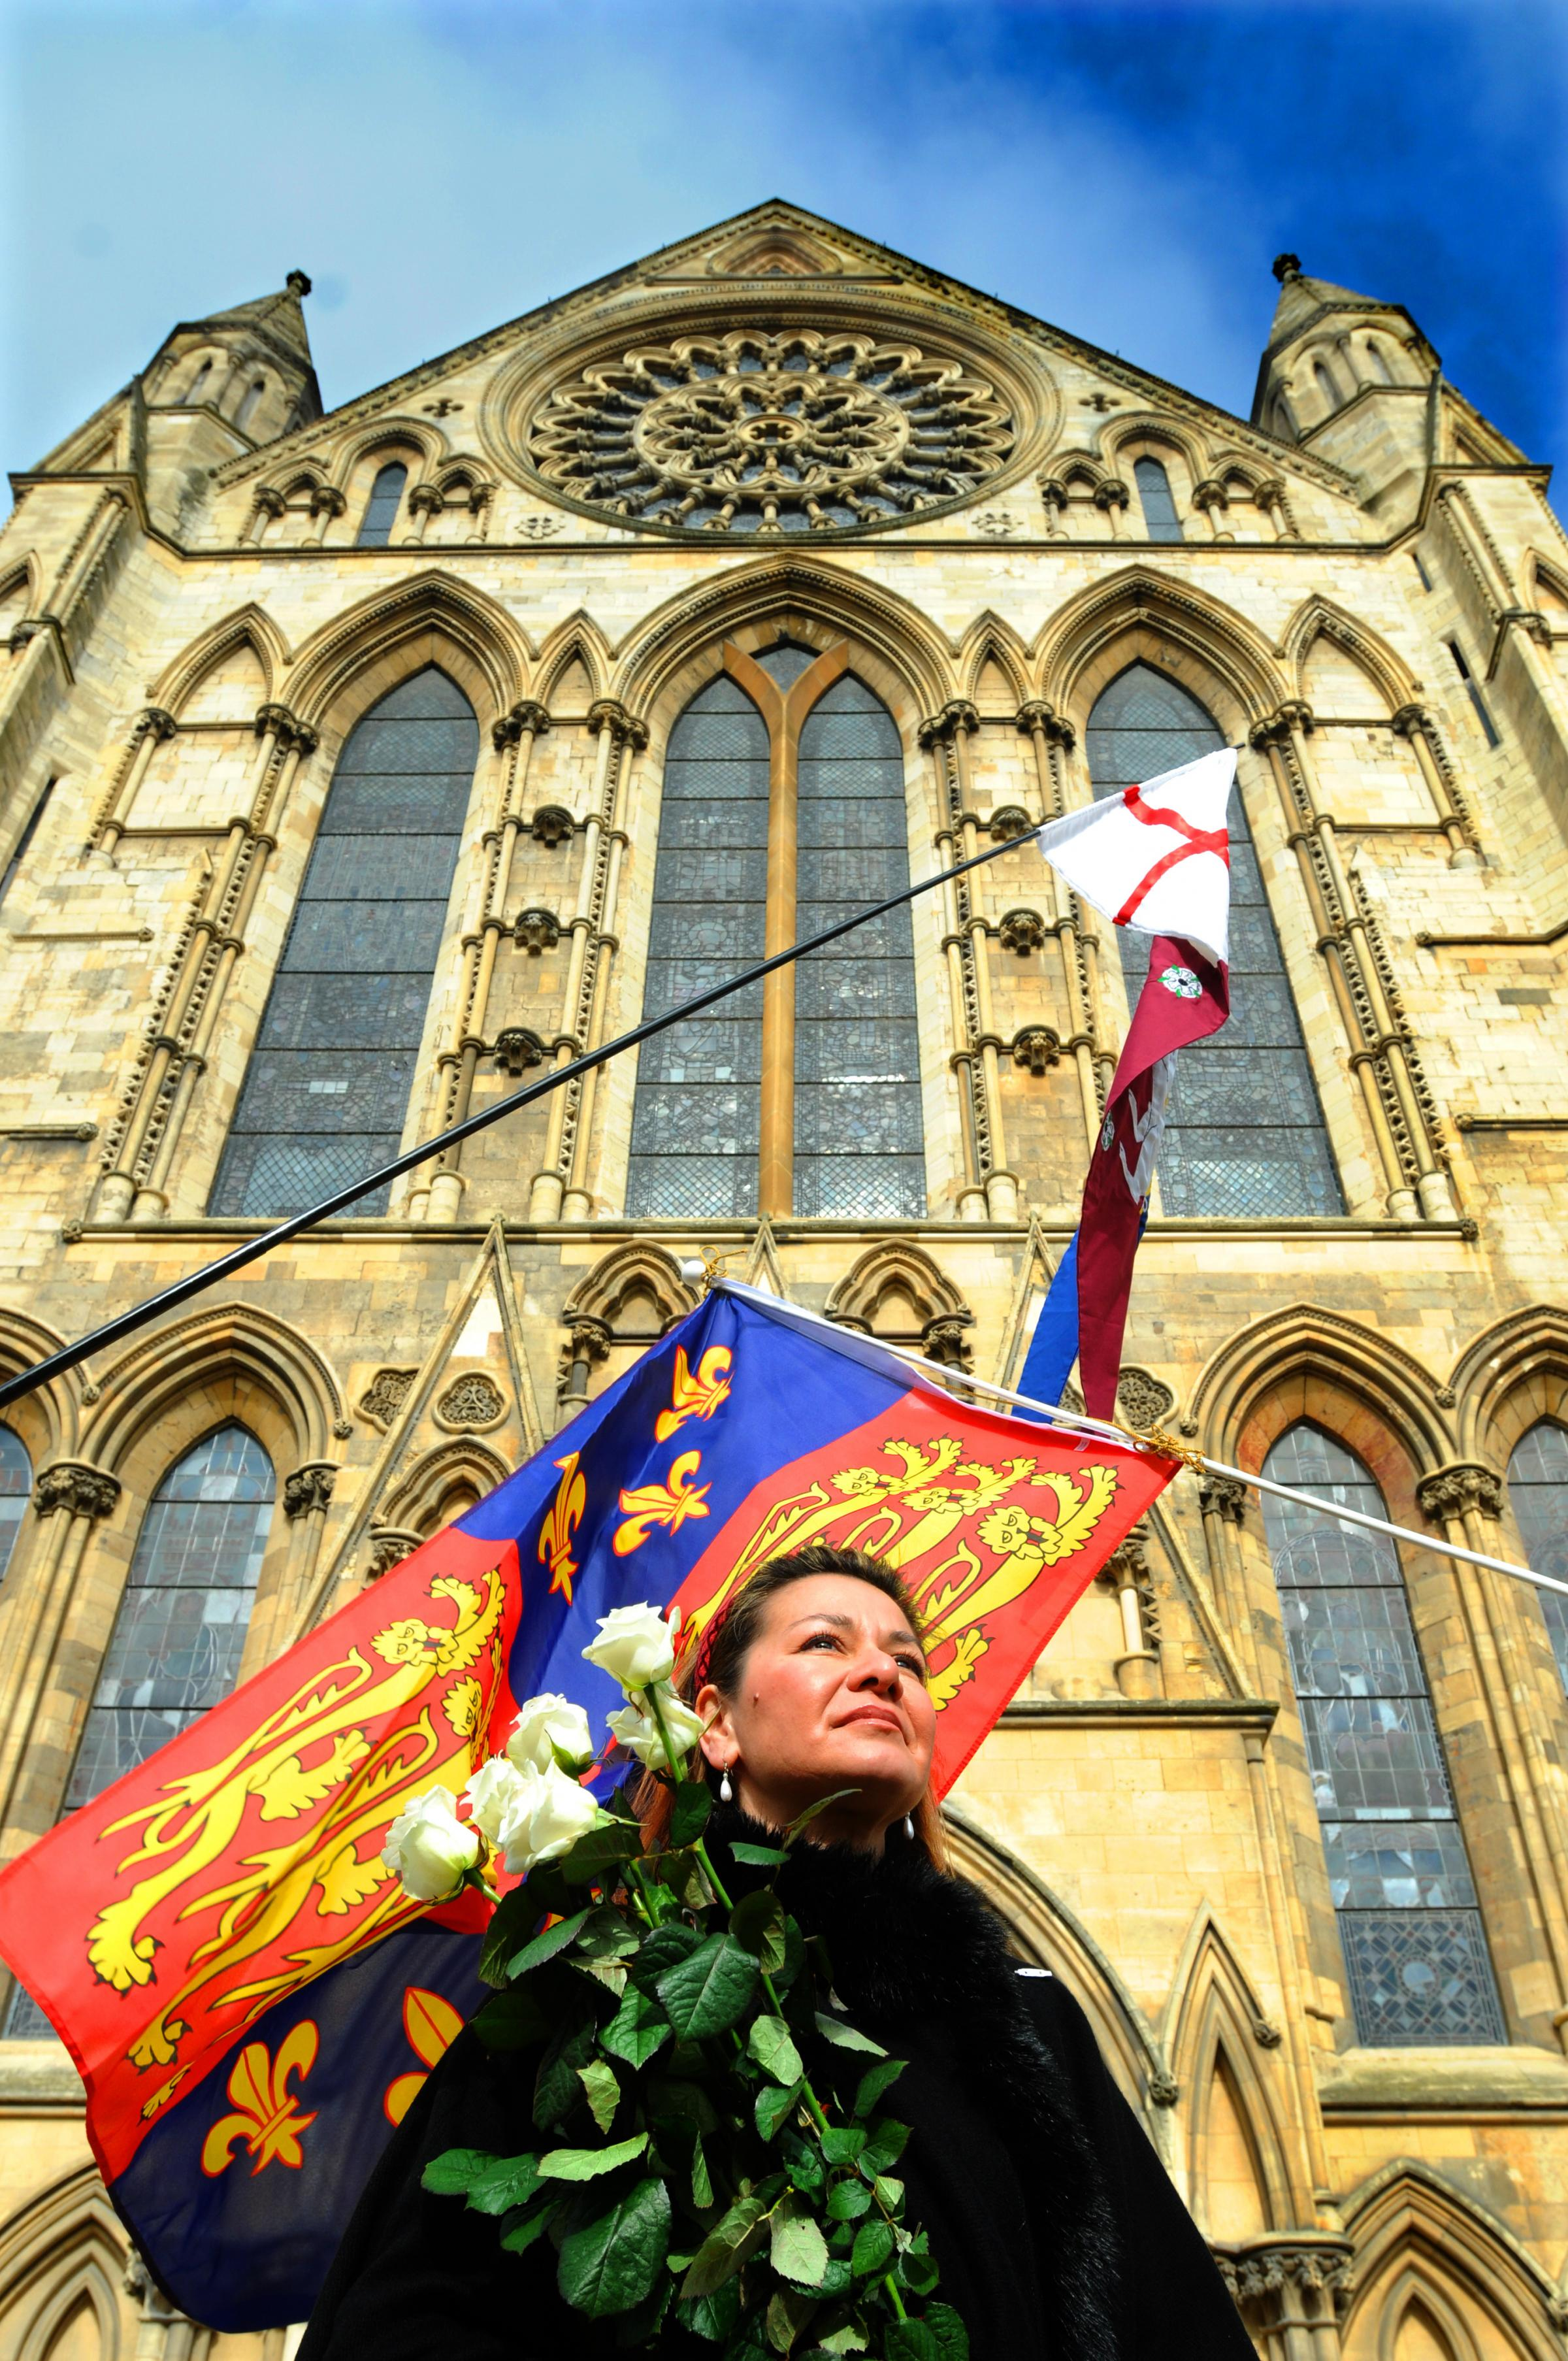 Richard III campaigners stage march through York